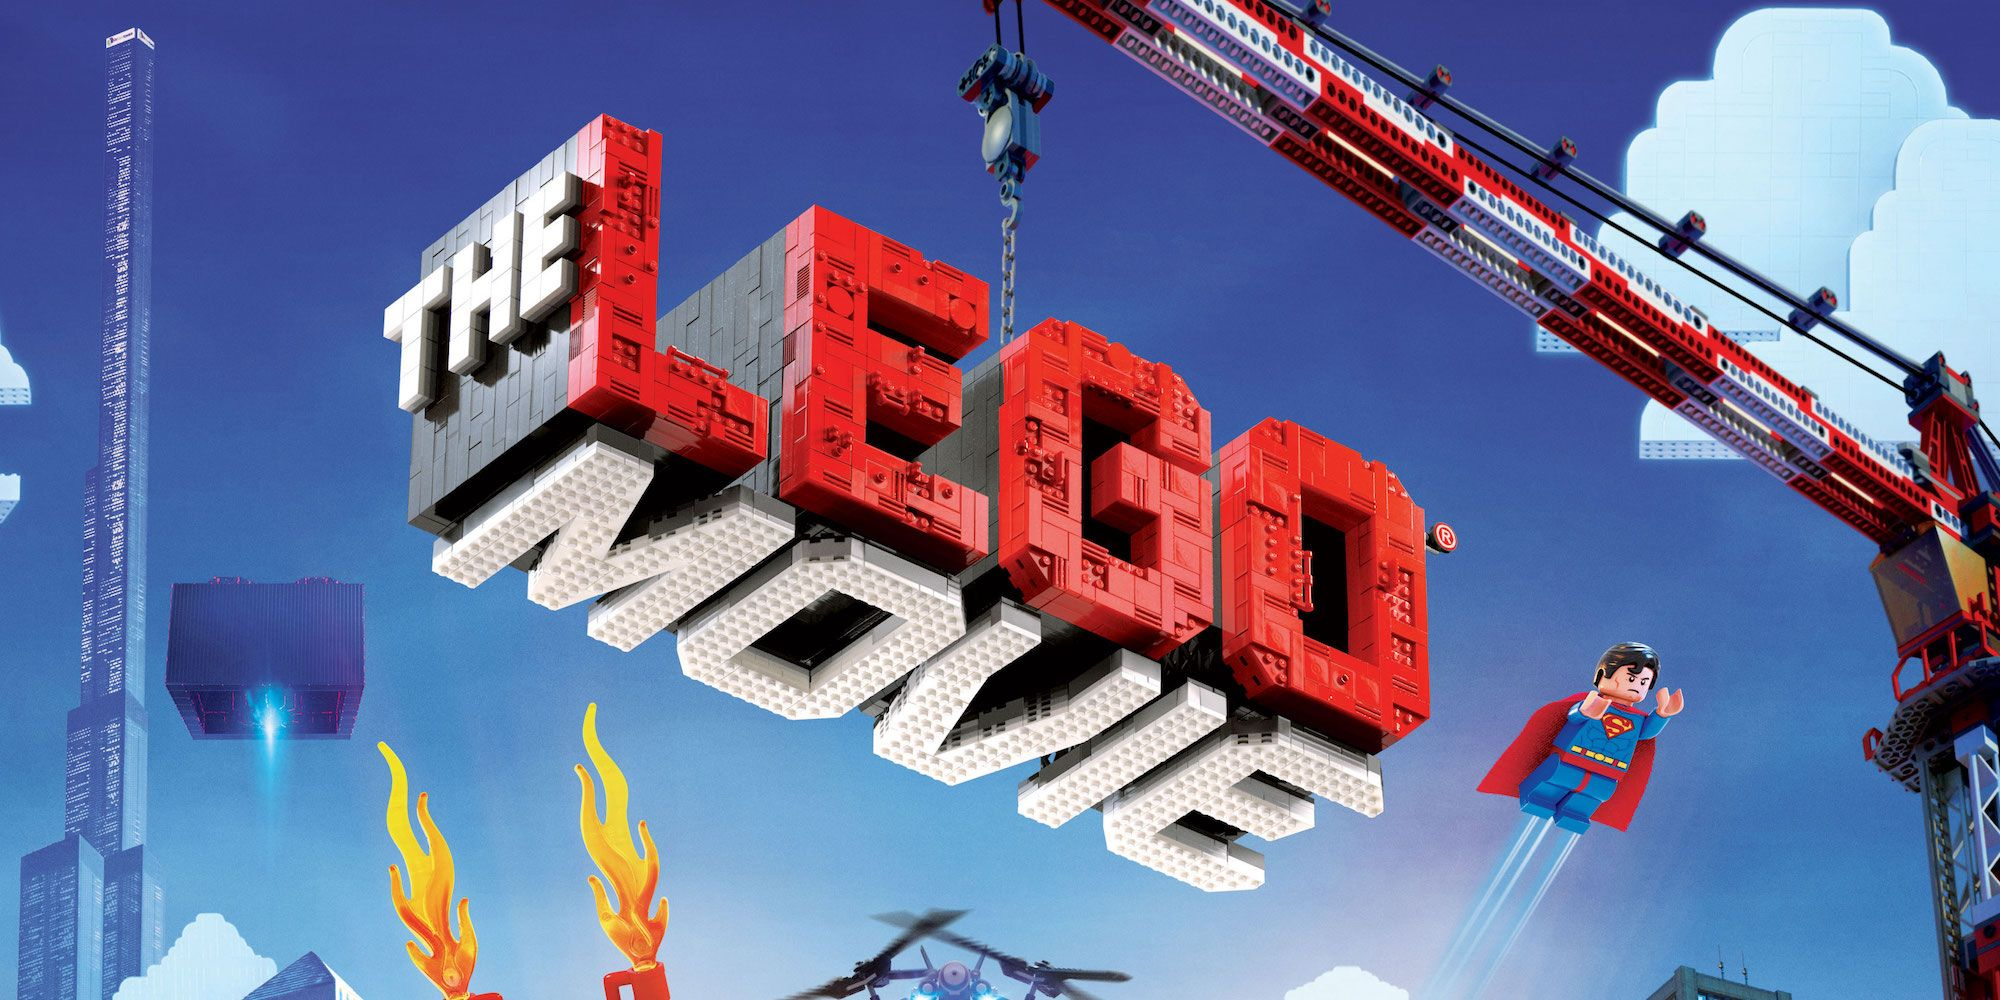 the lego movie 2 official title logo prepare for the. Black Bedroom Furniture Sets. Home Design Ideas